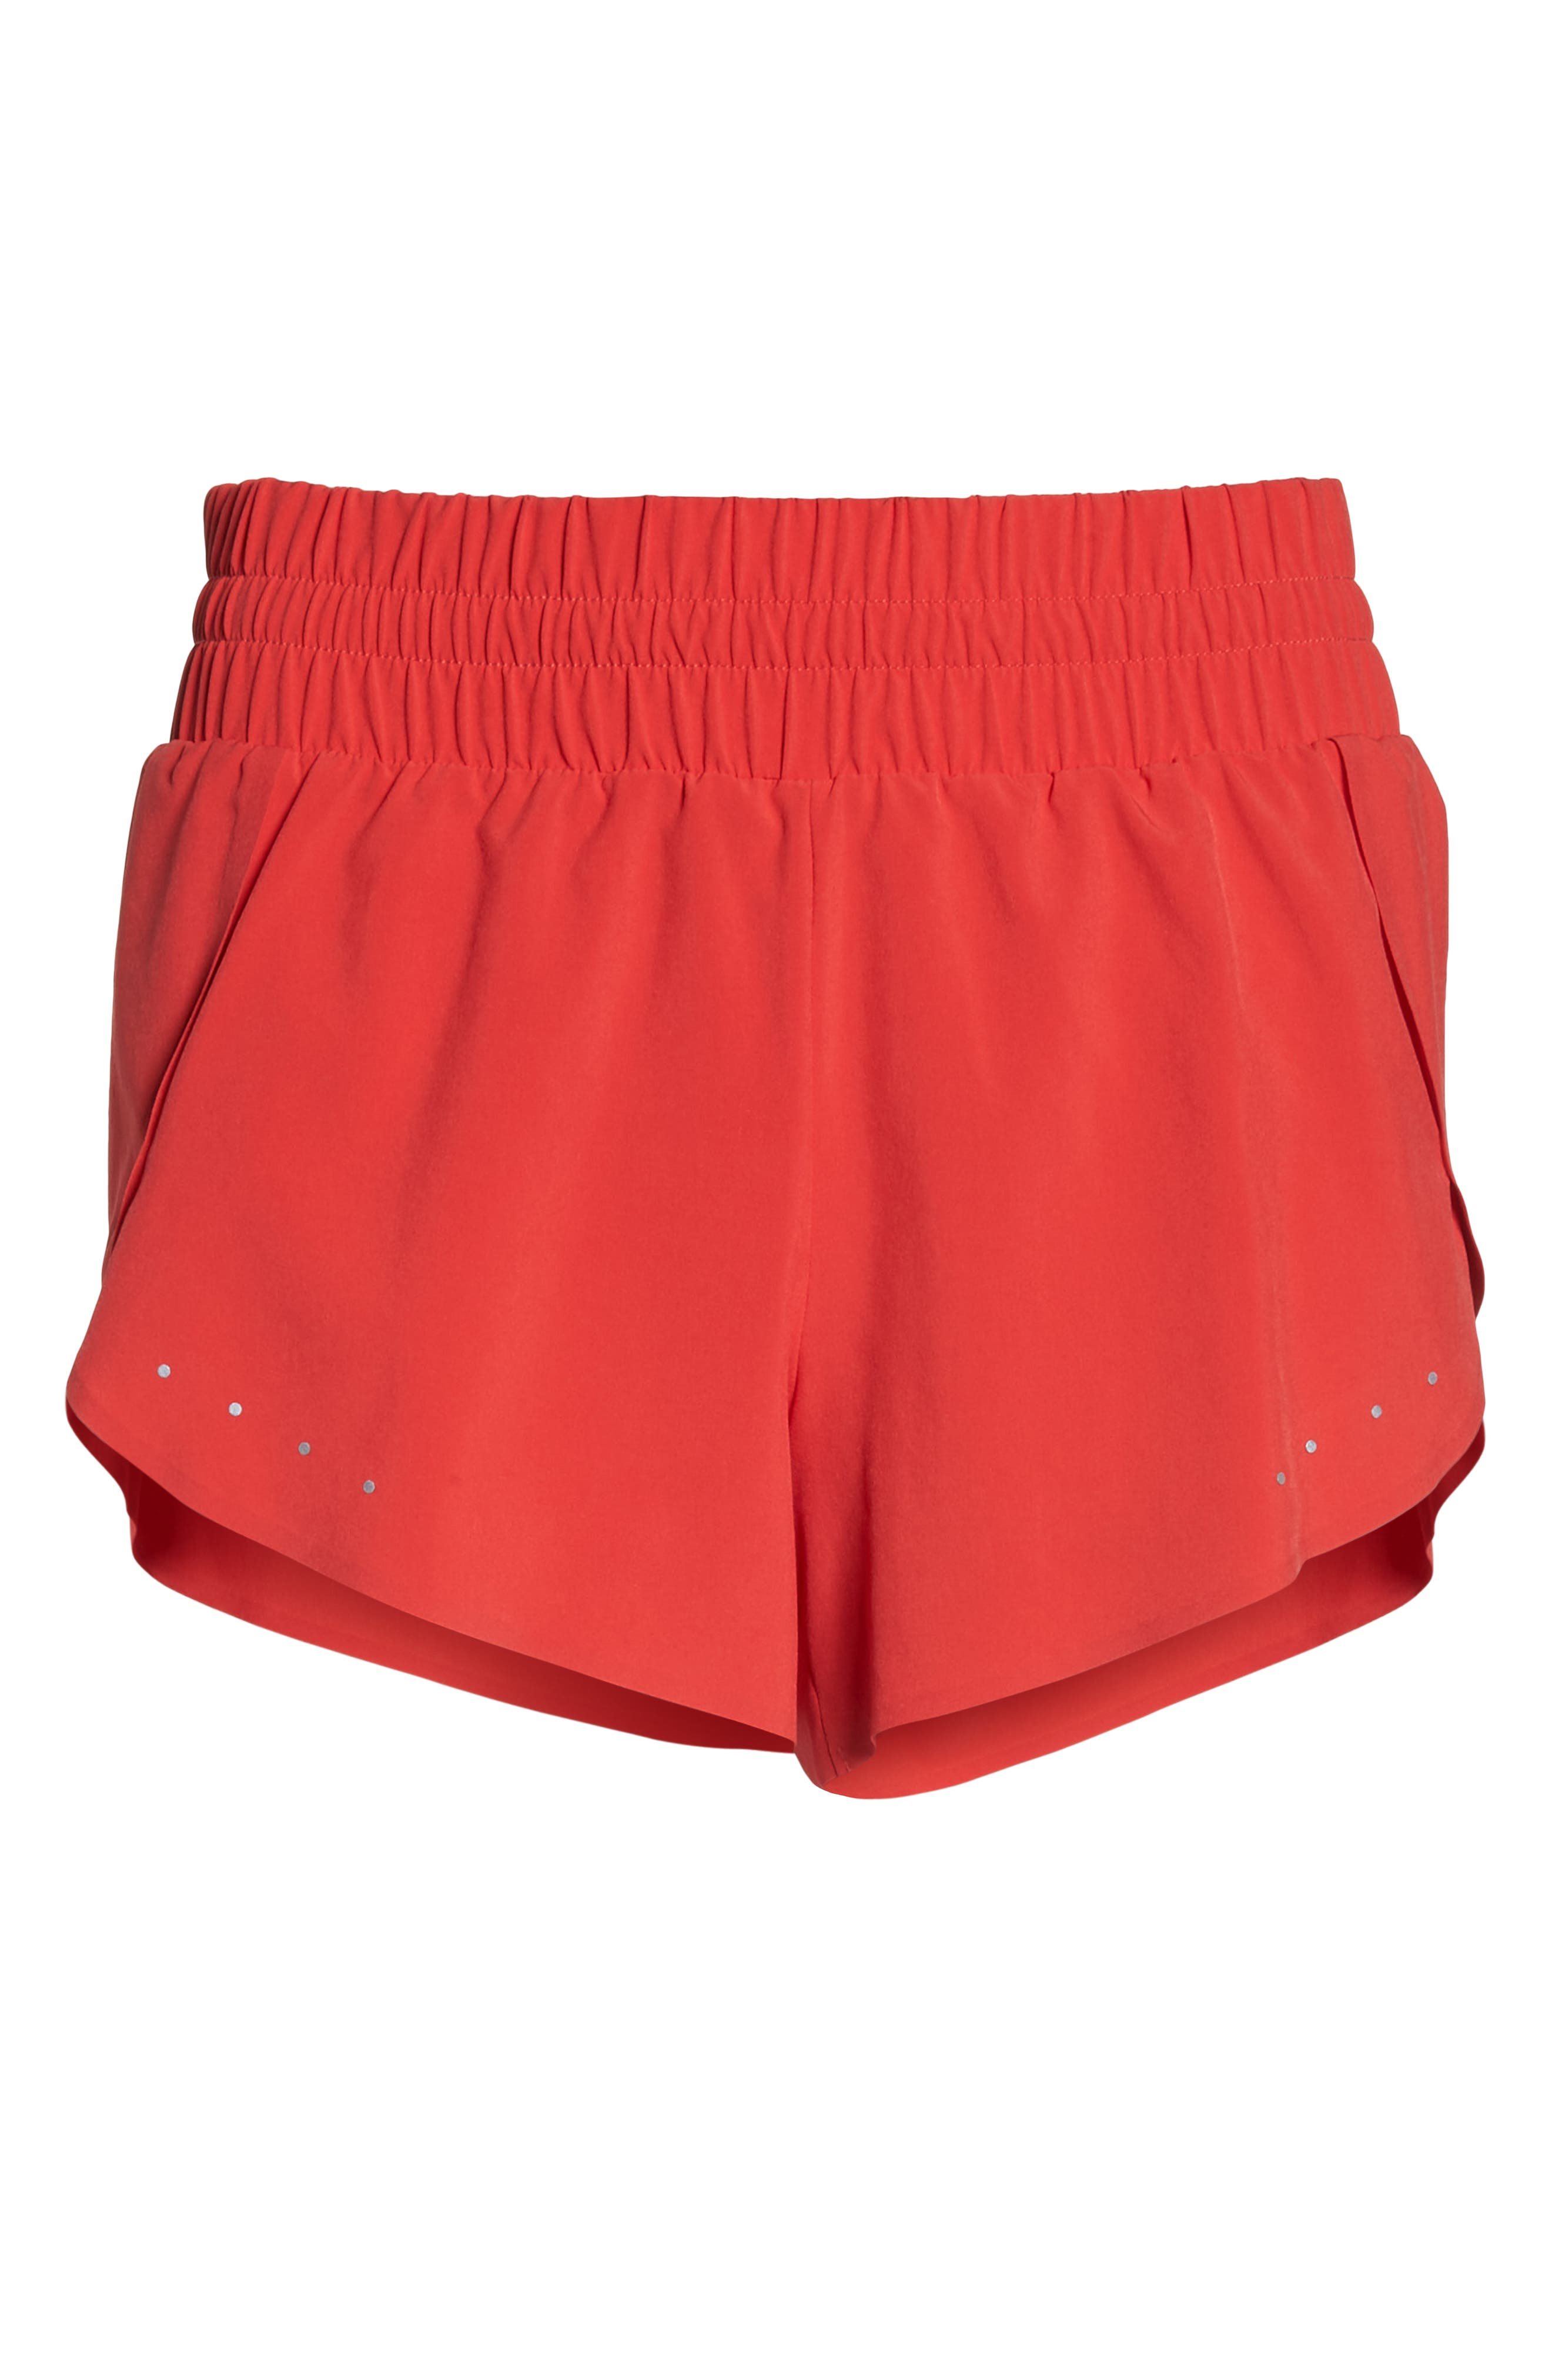 Run Play Shorts,                             Alternate thumbnail 7, color,                             Red Hibiscus